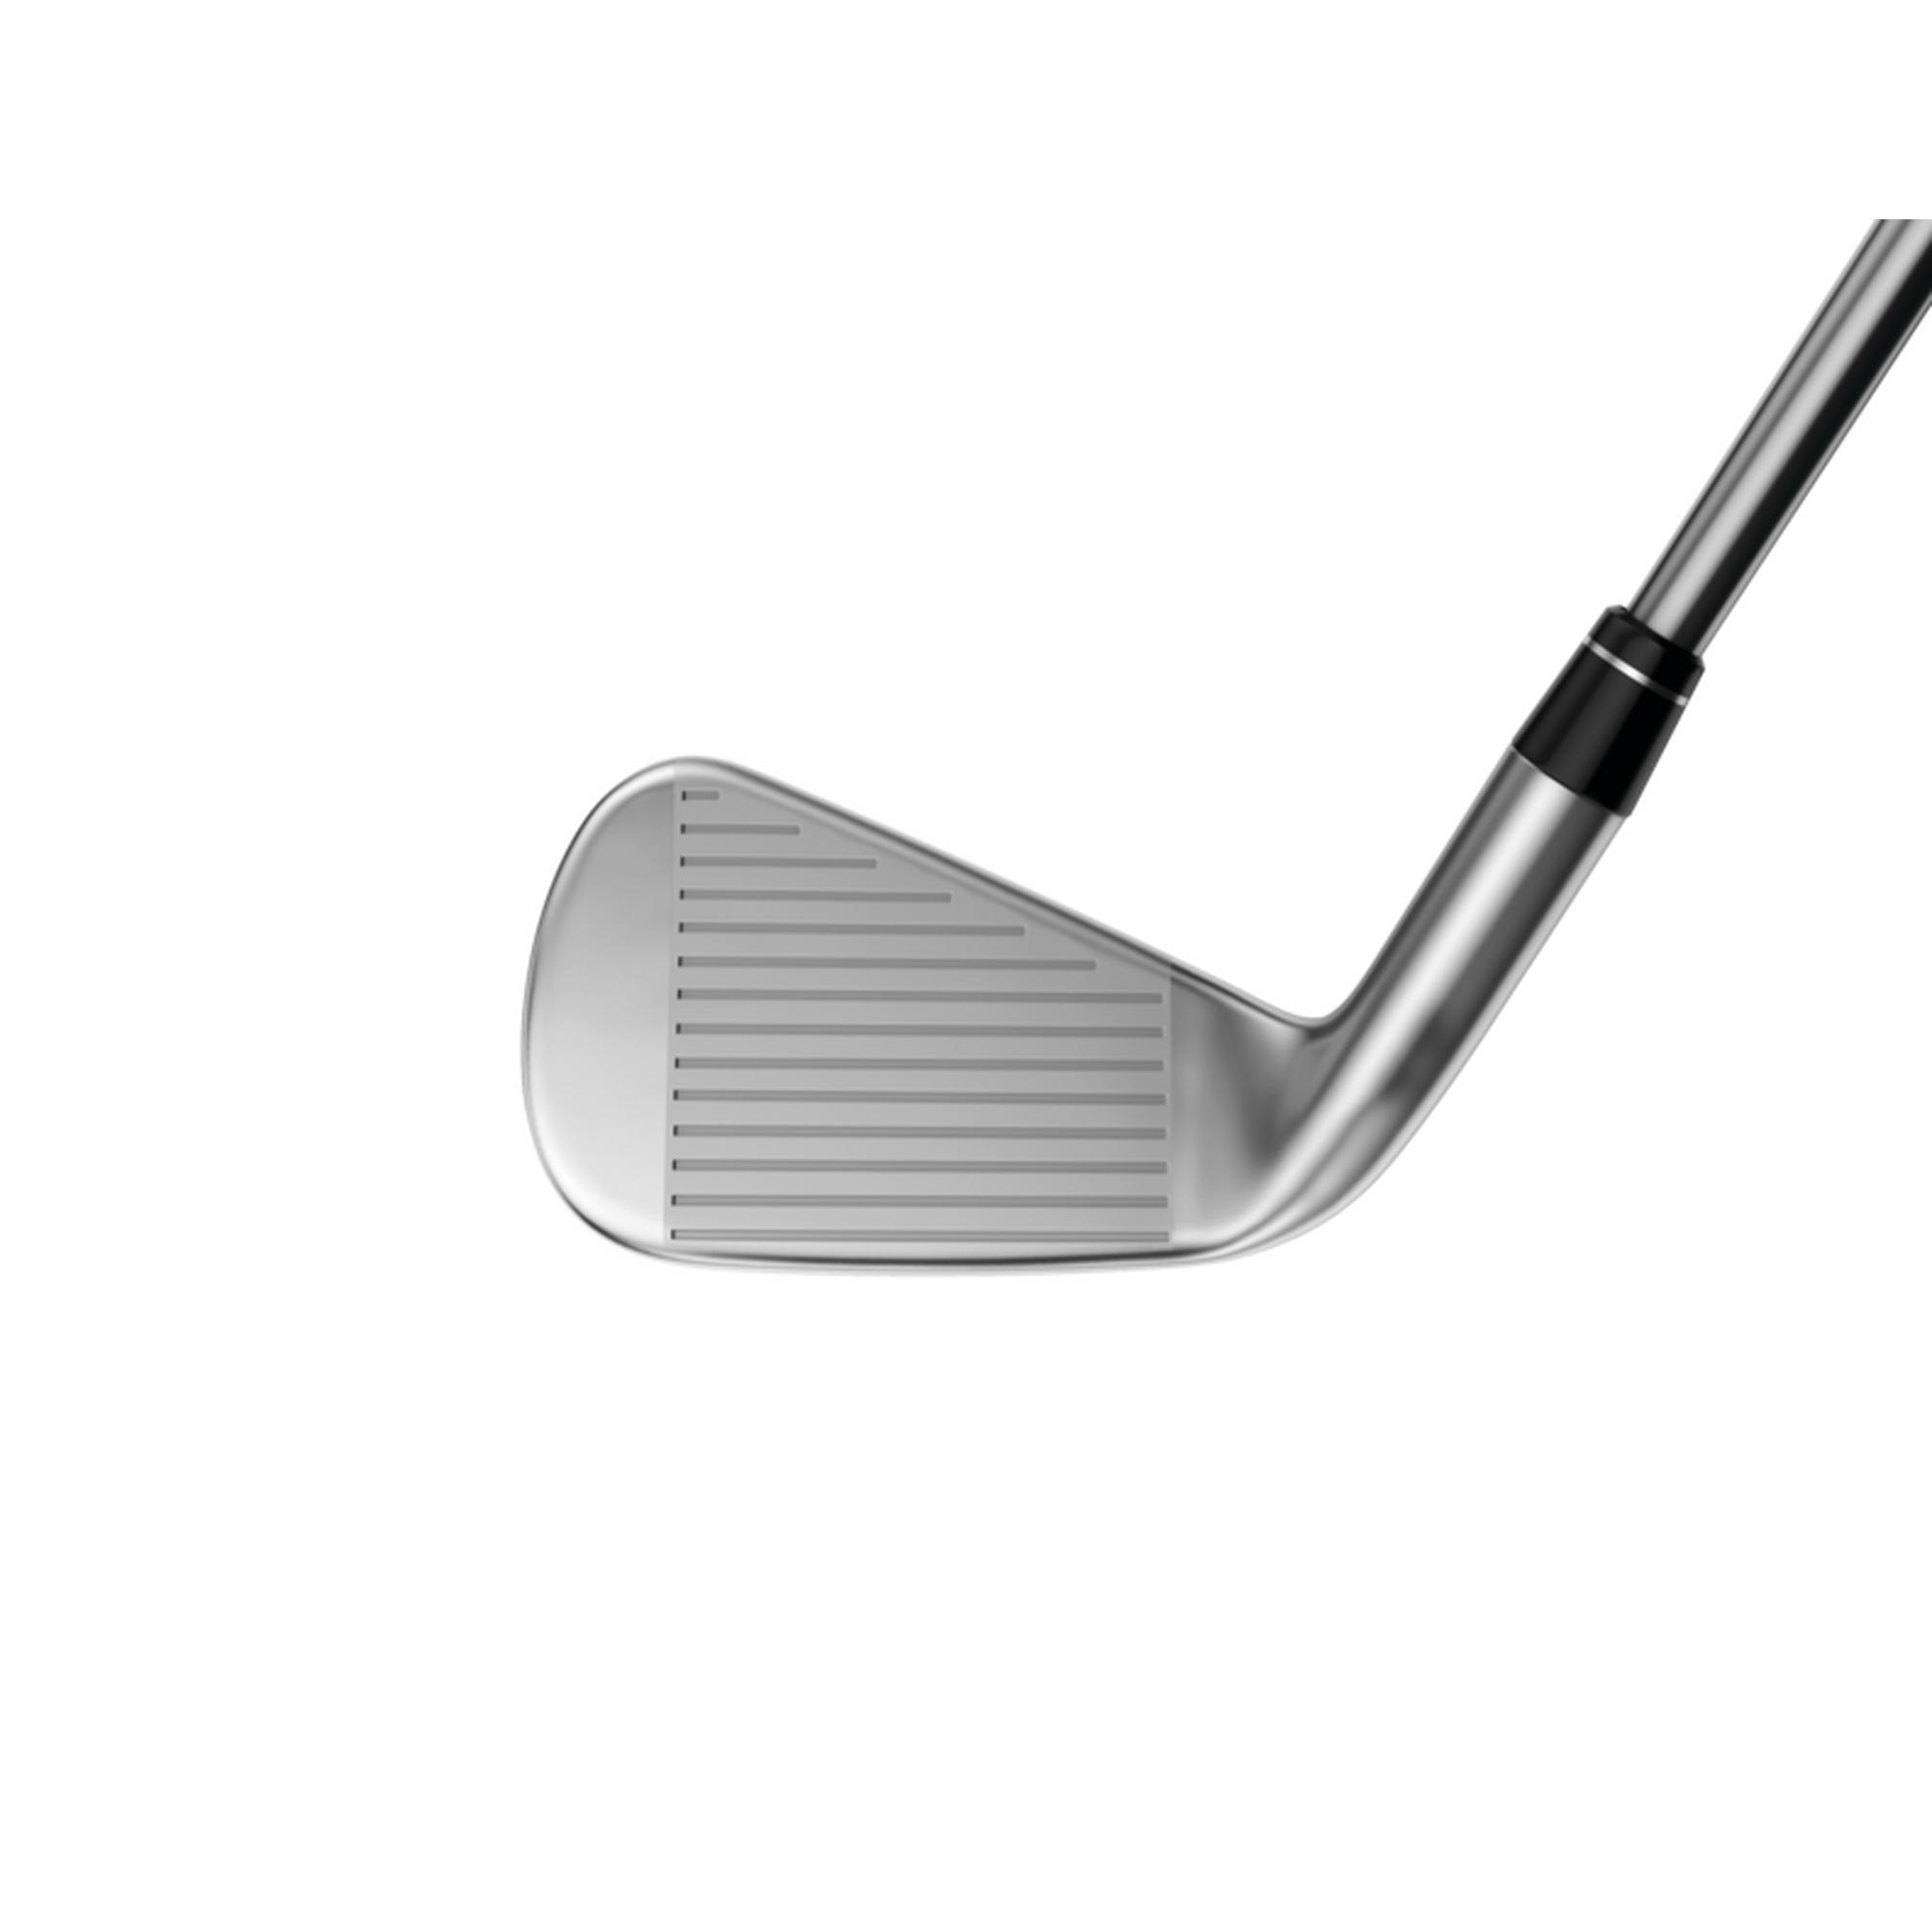 Apex 19 5-PW, AW Iron Set with Steel Shafts